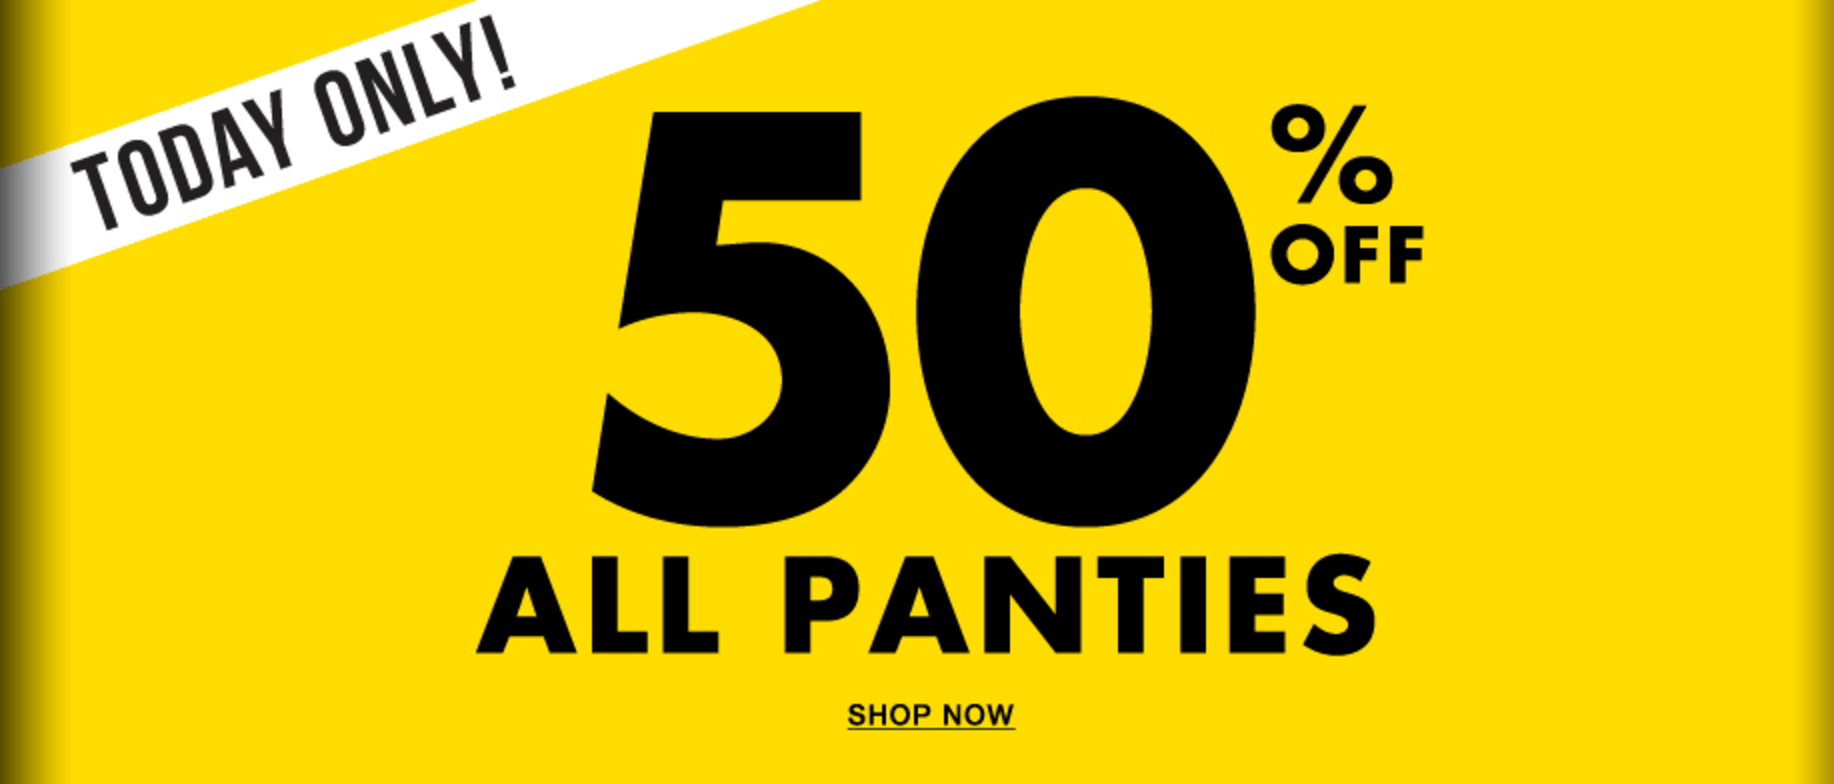 La Senza Canada Deal Today Only Save 50% Off All Panties!